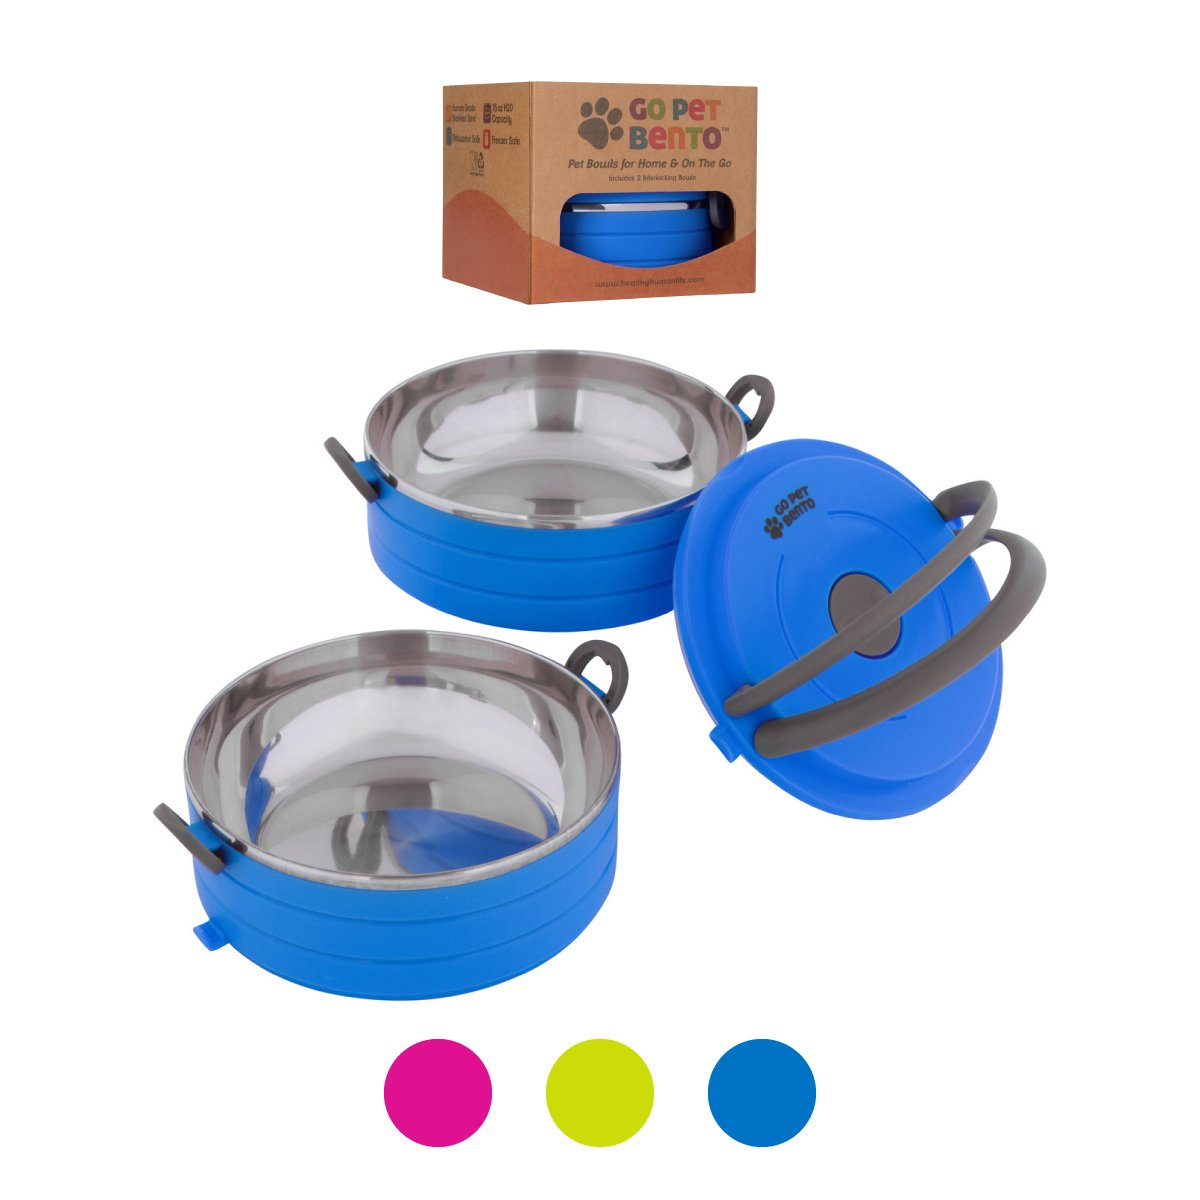 Healthy Human Portable Dog & Pet Travel Bowls with Lid - Human Grade Stainless Steel - Ideal for Food & Water - Blue - 2 Bowl Set